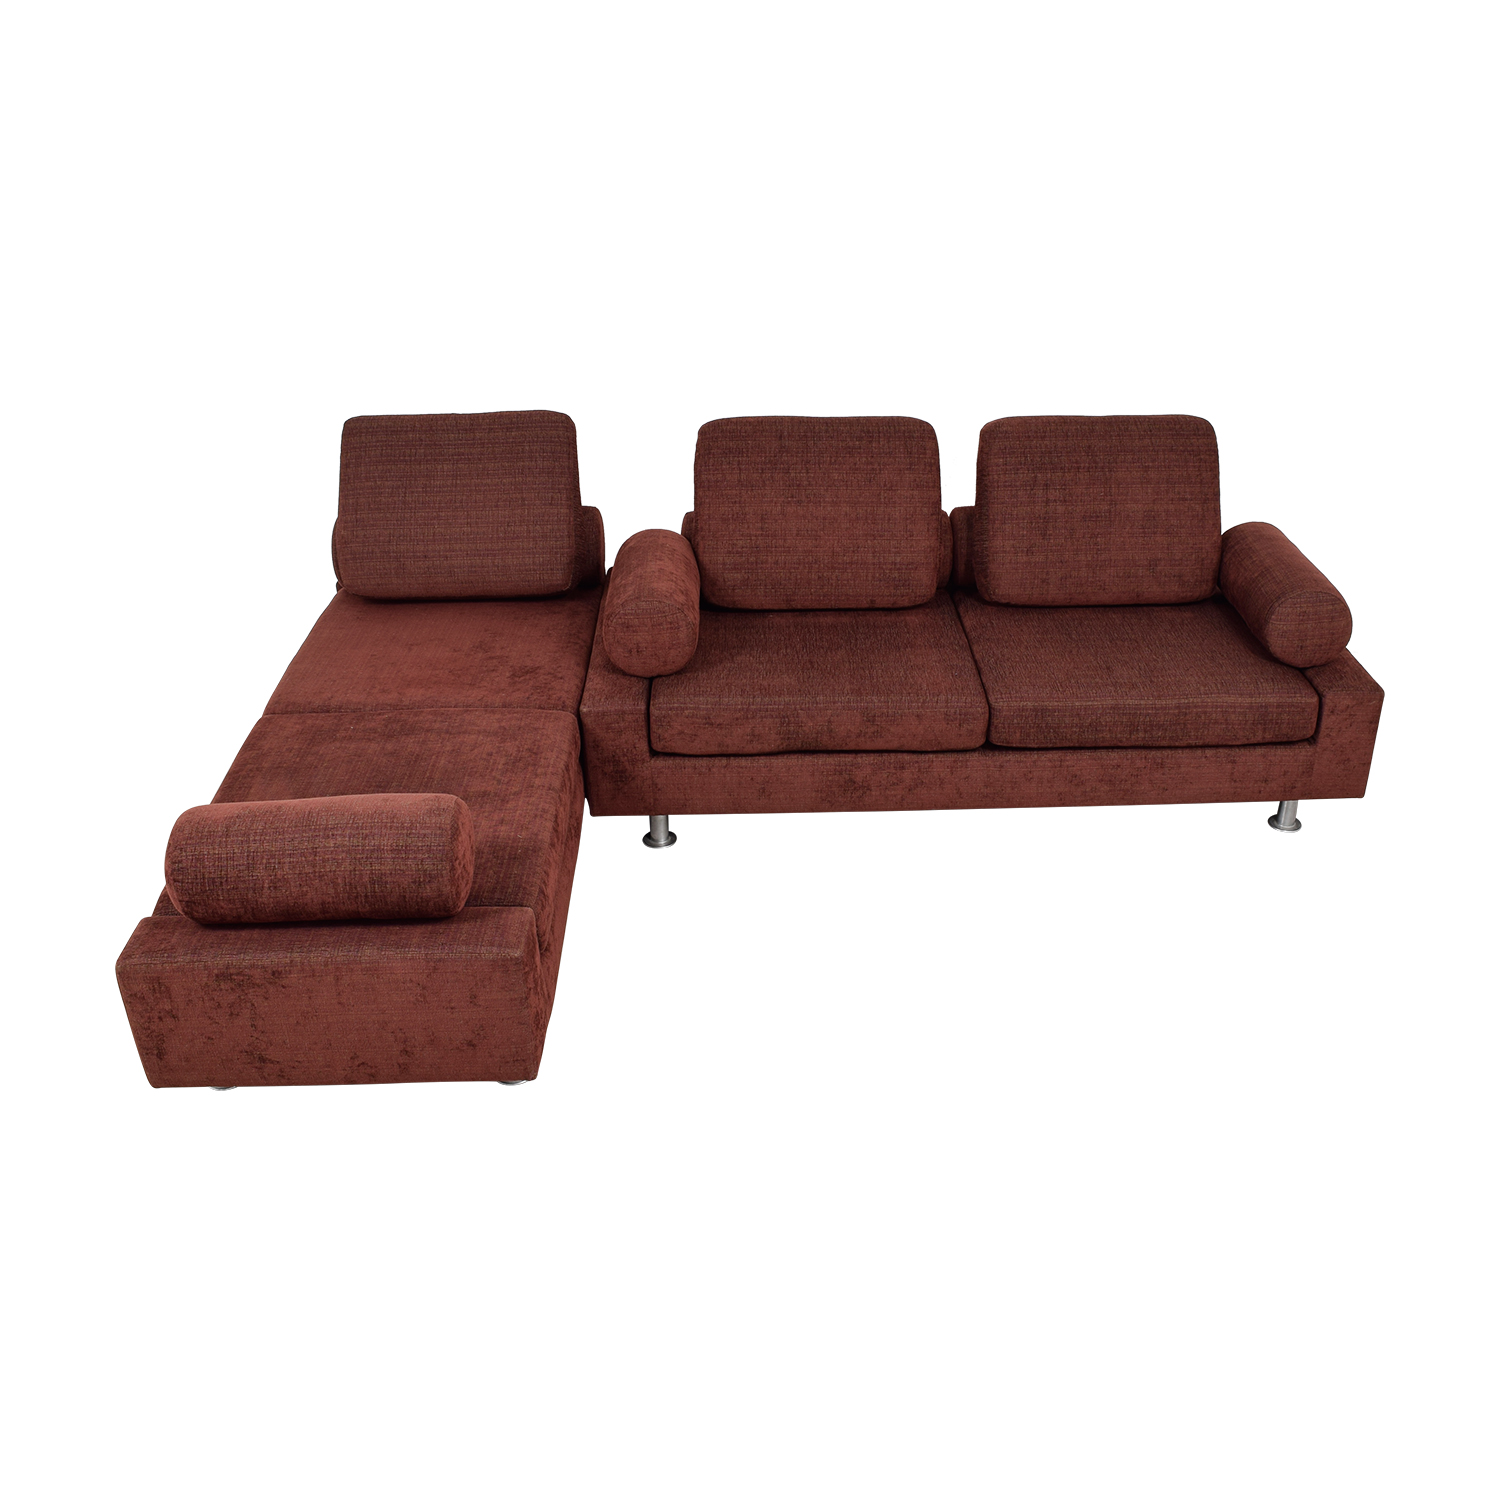 buy Normand Couture for Shermag Cameleon Convertible Sofa Normand Couture for Shermag